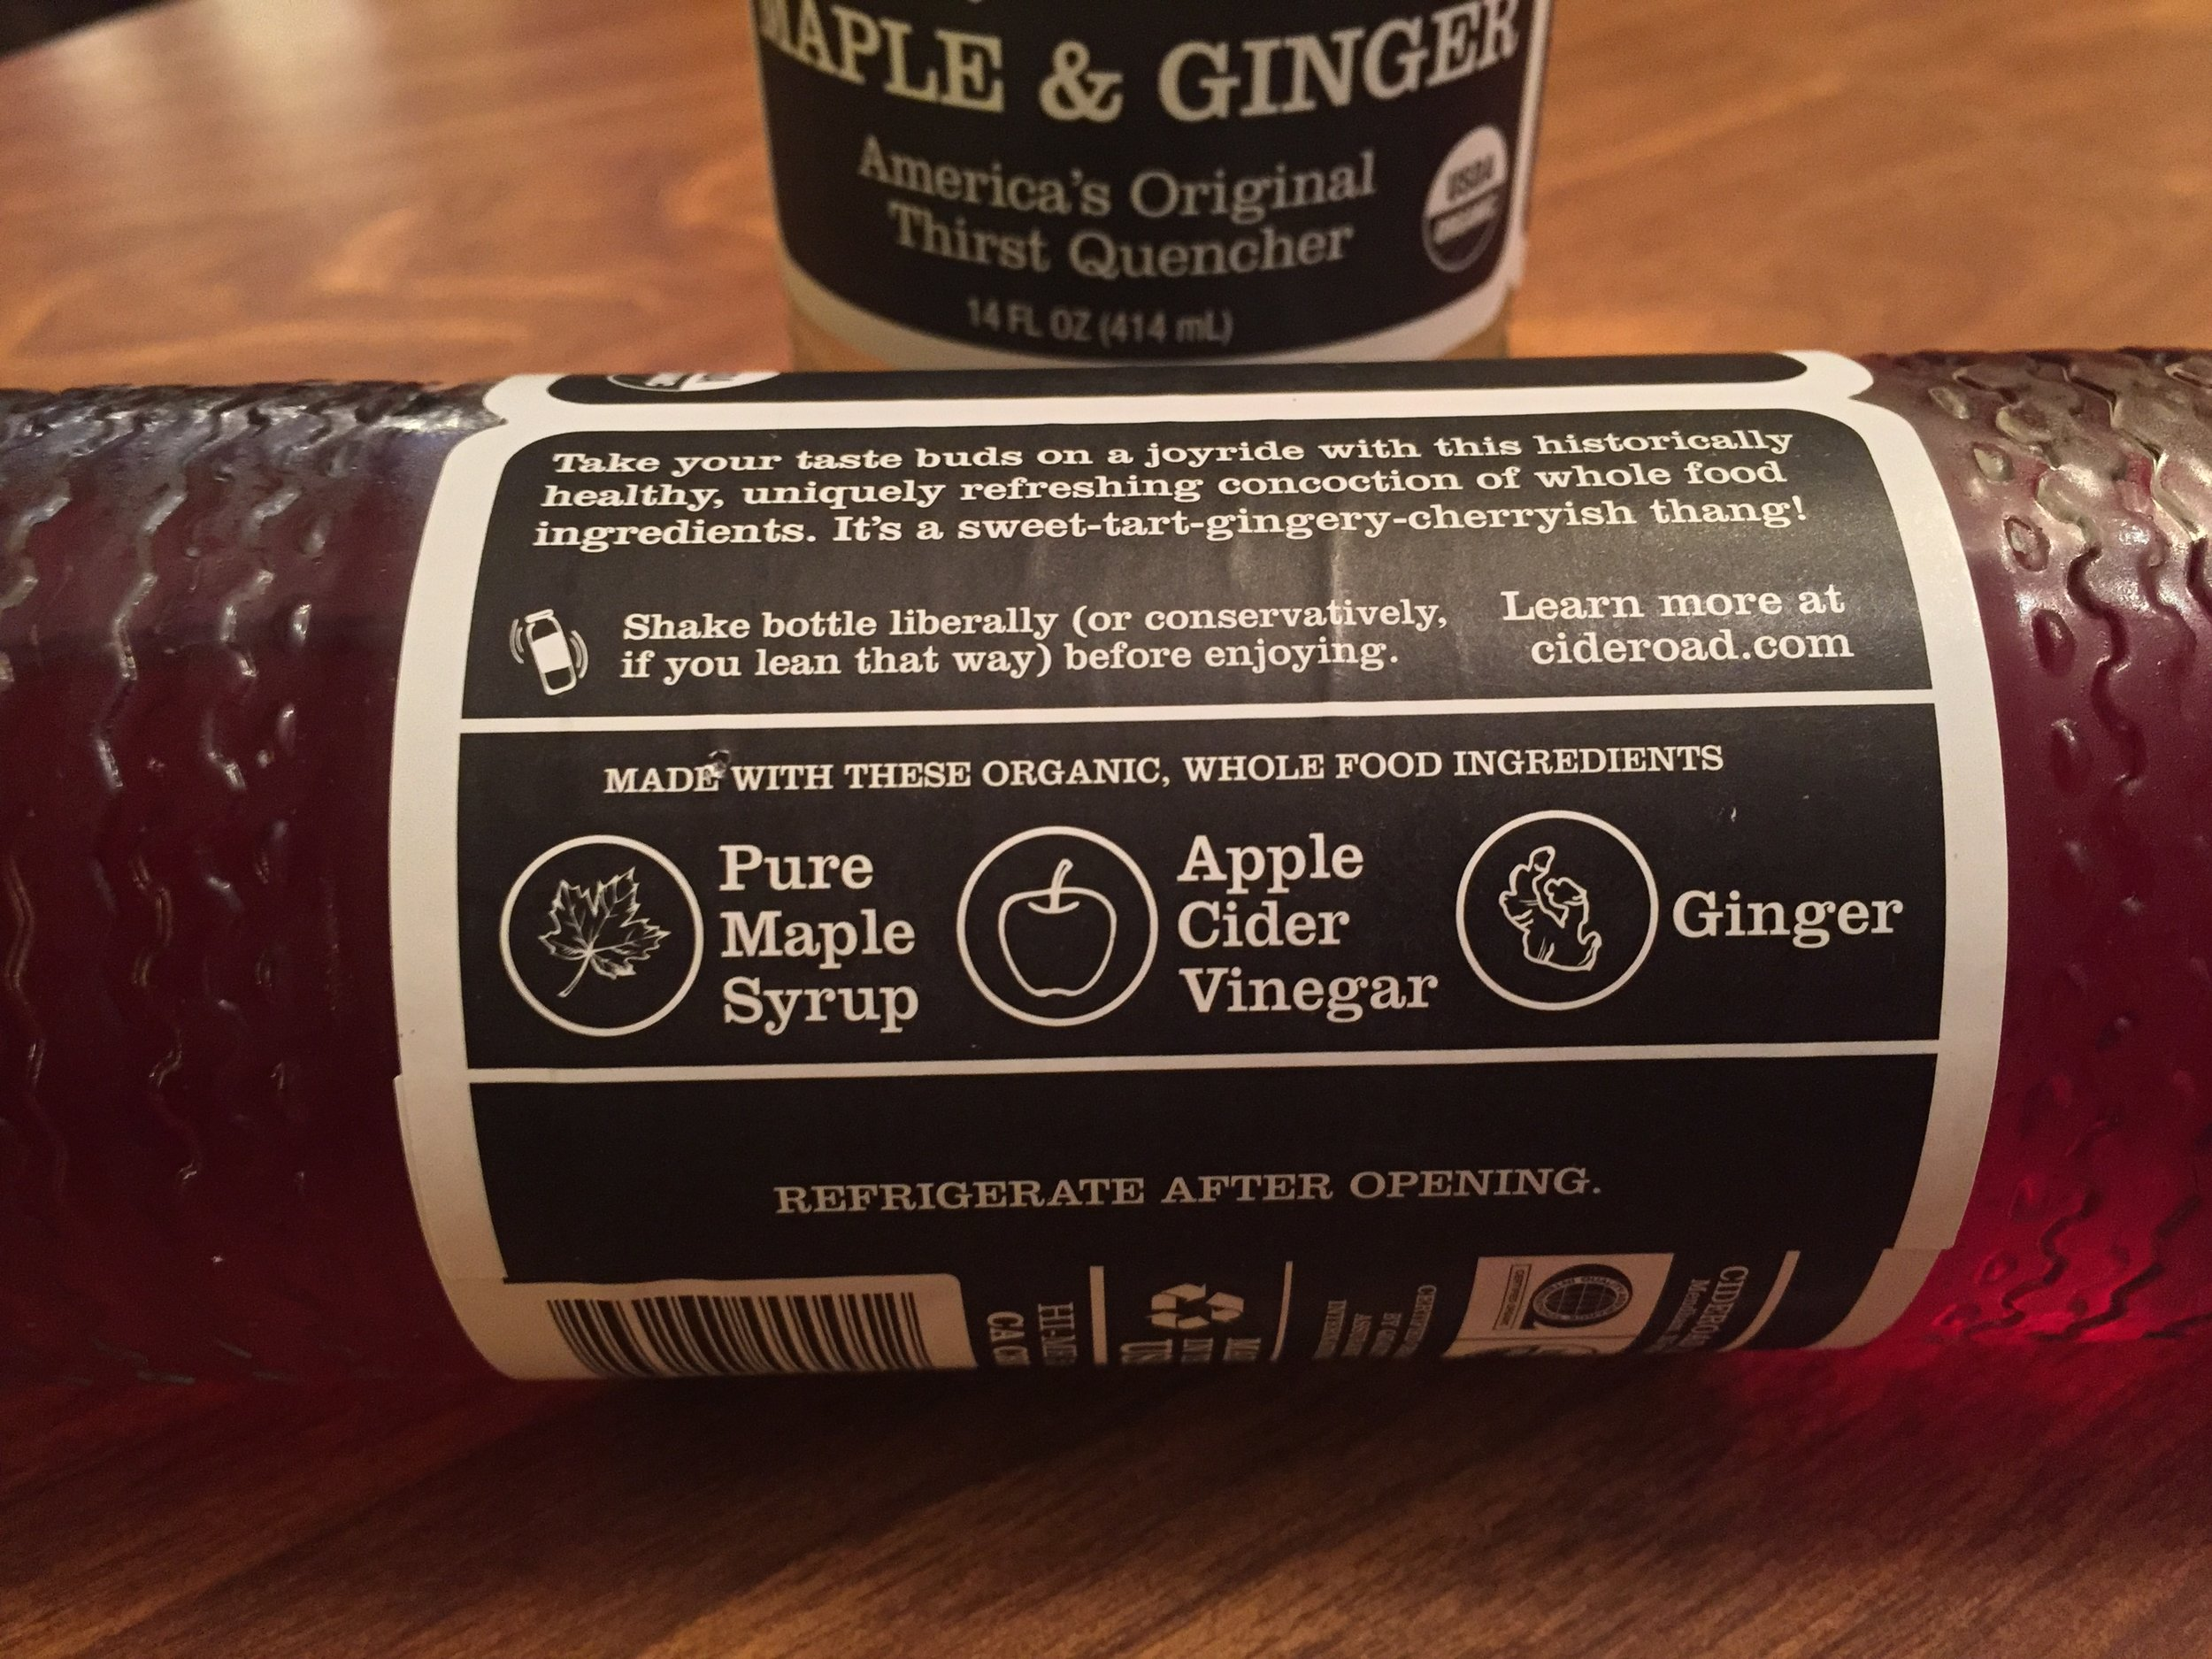 The main ingredients of switched are highlighted on the label, as are the instructions for how to shake it.